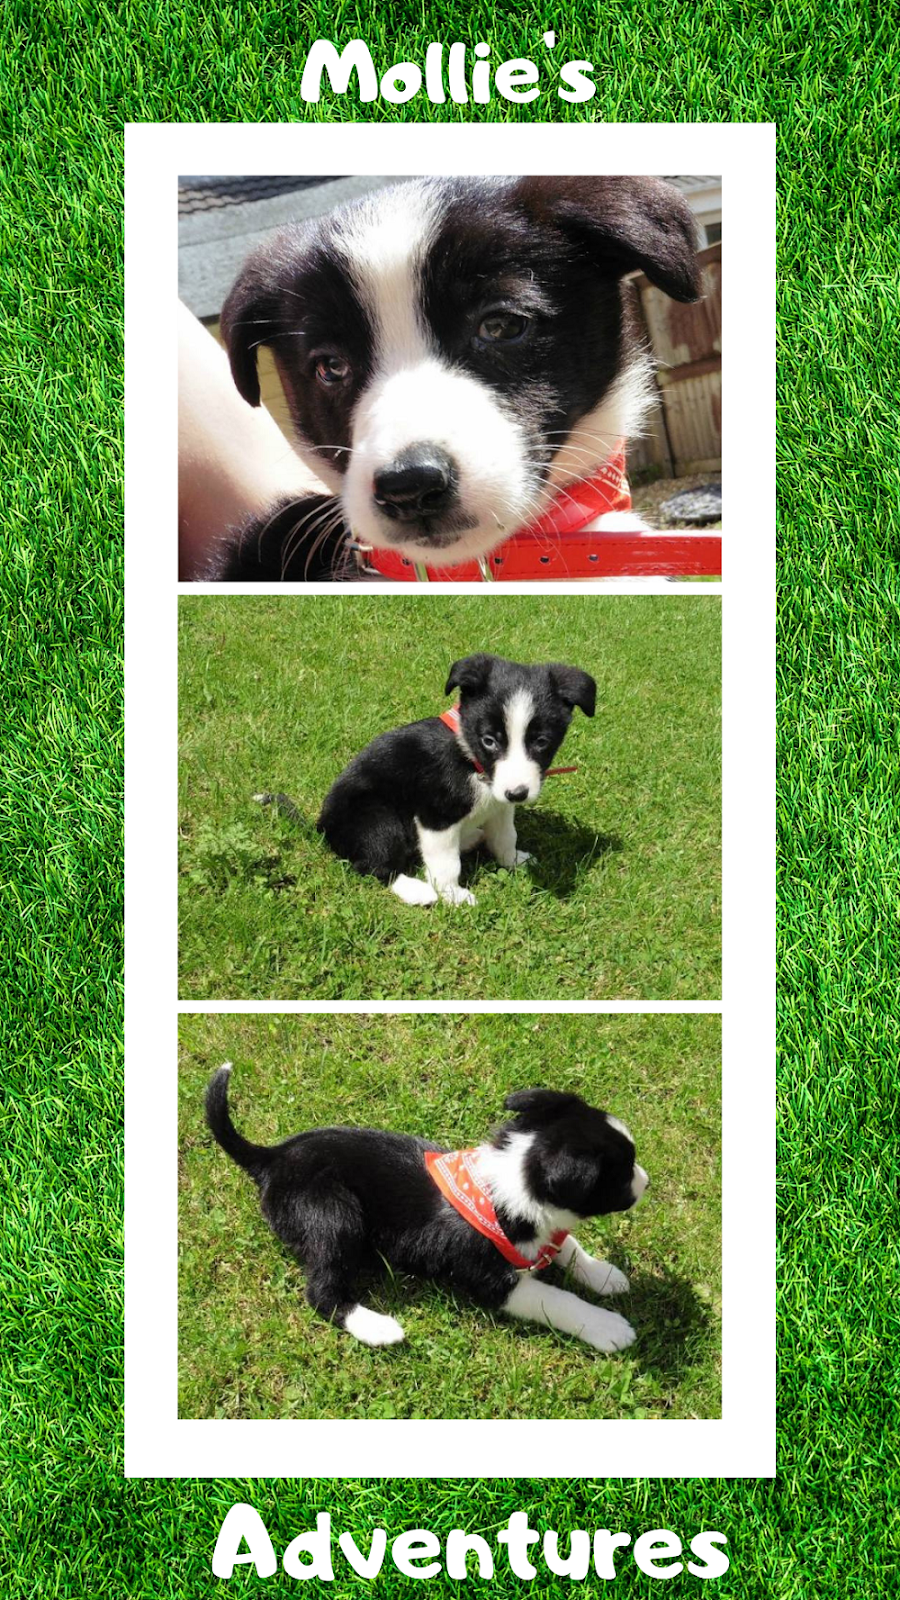 Mollie The Collie: Puppy Diaries